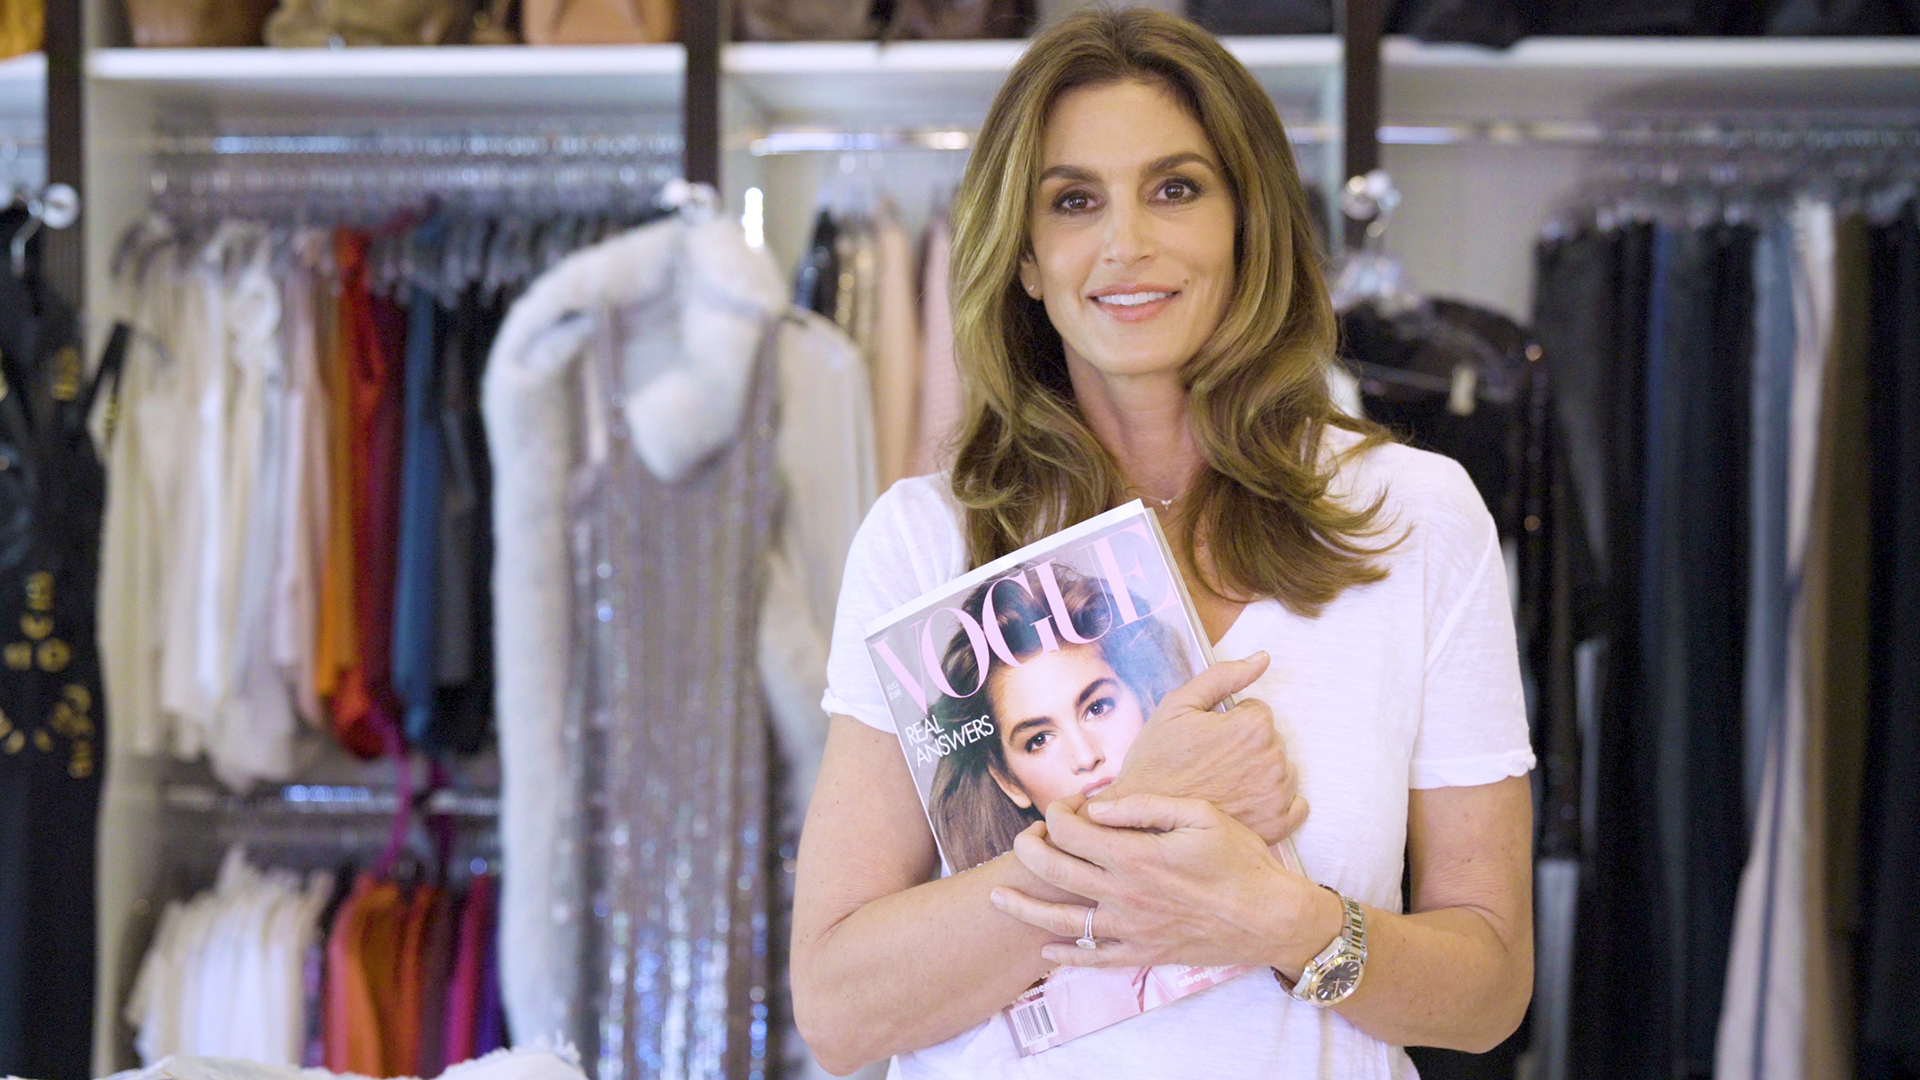 Cindy Crawford gives Vogue a 360-degree tour of her closet